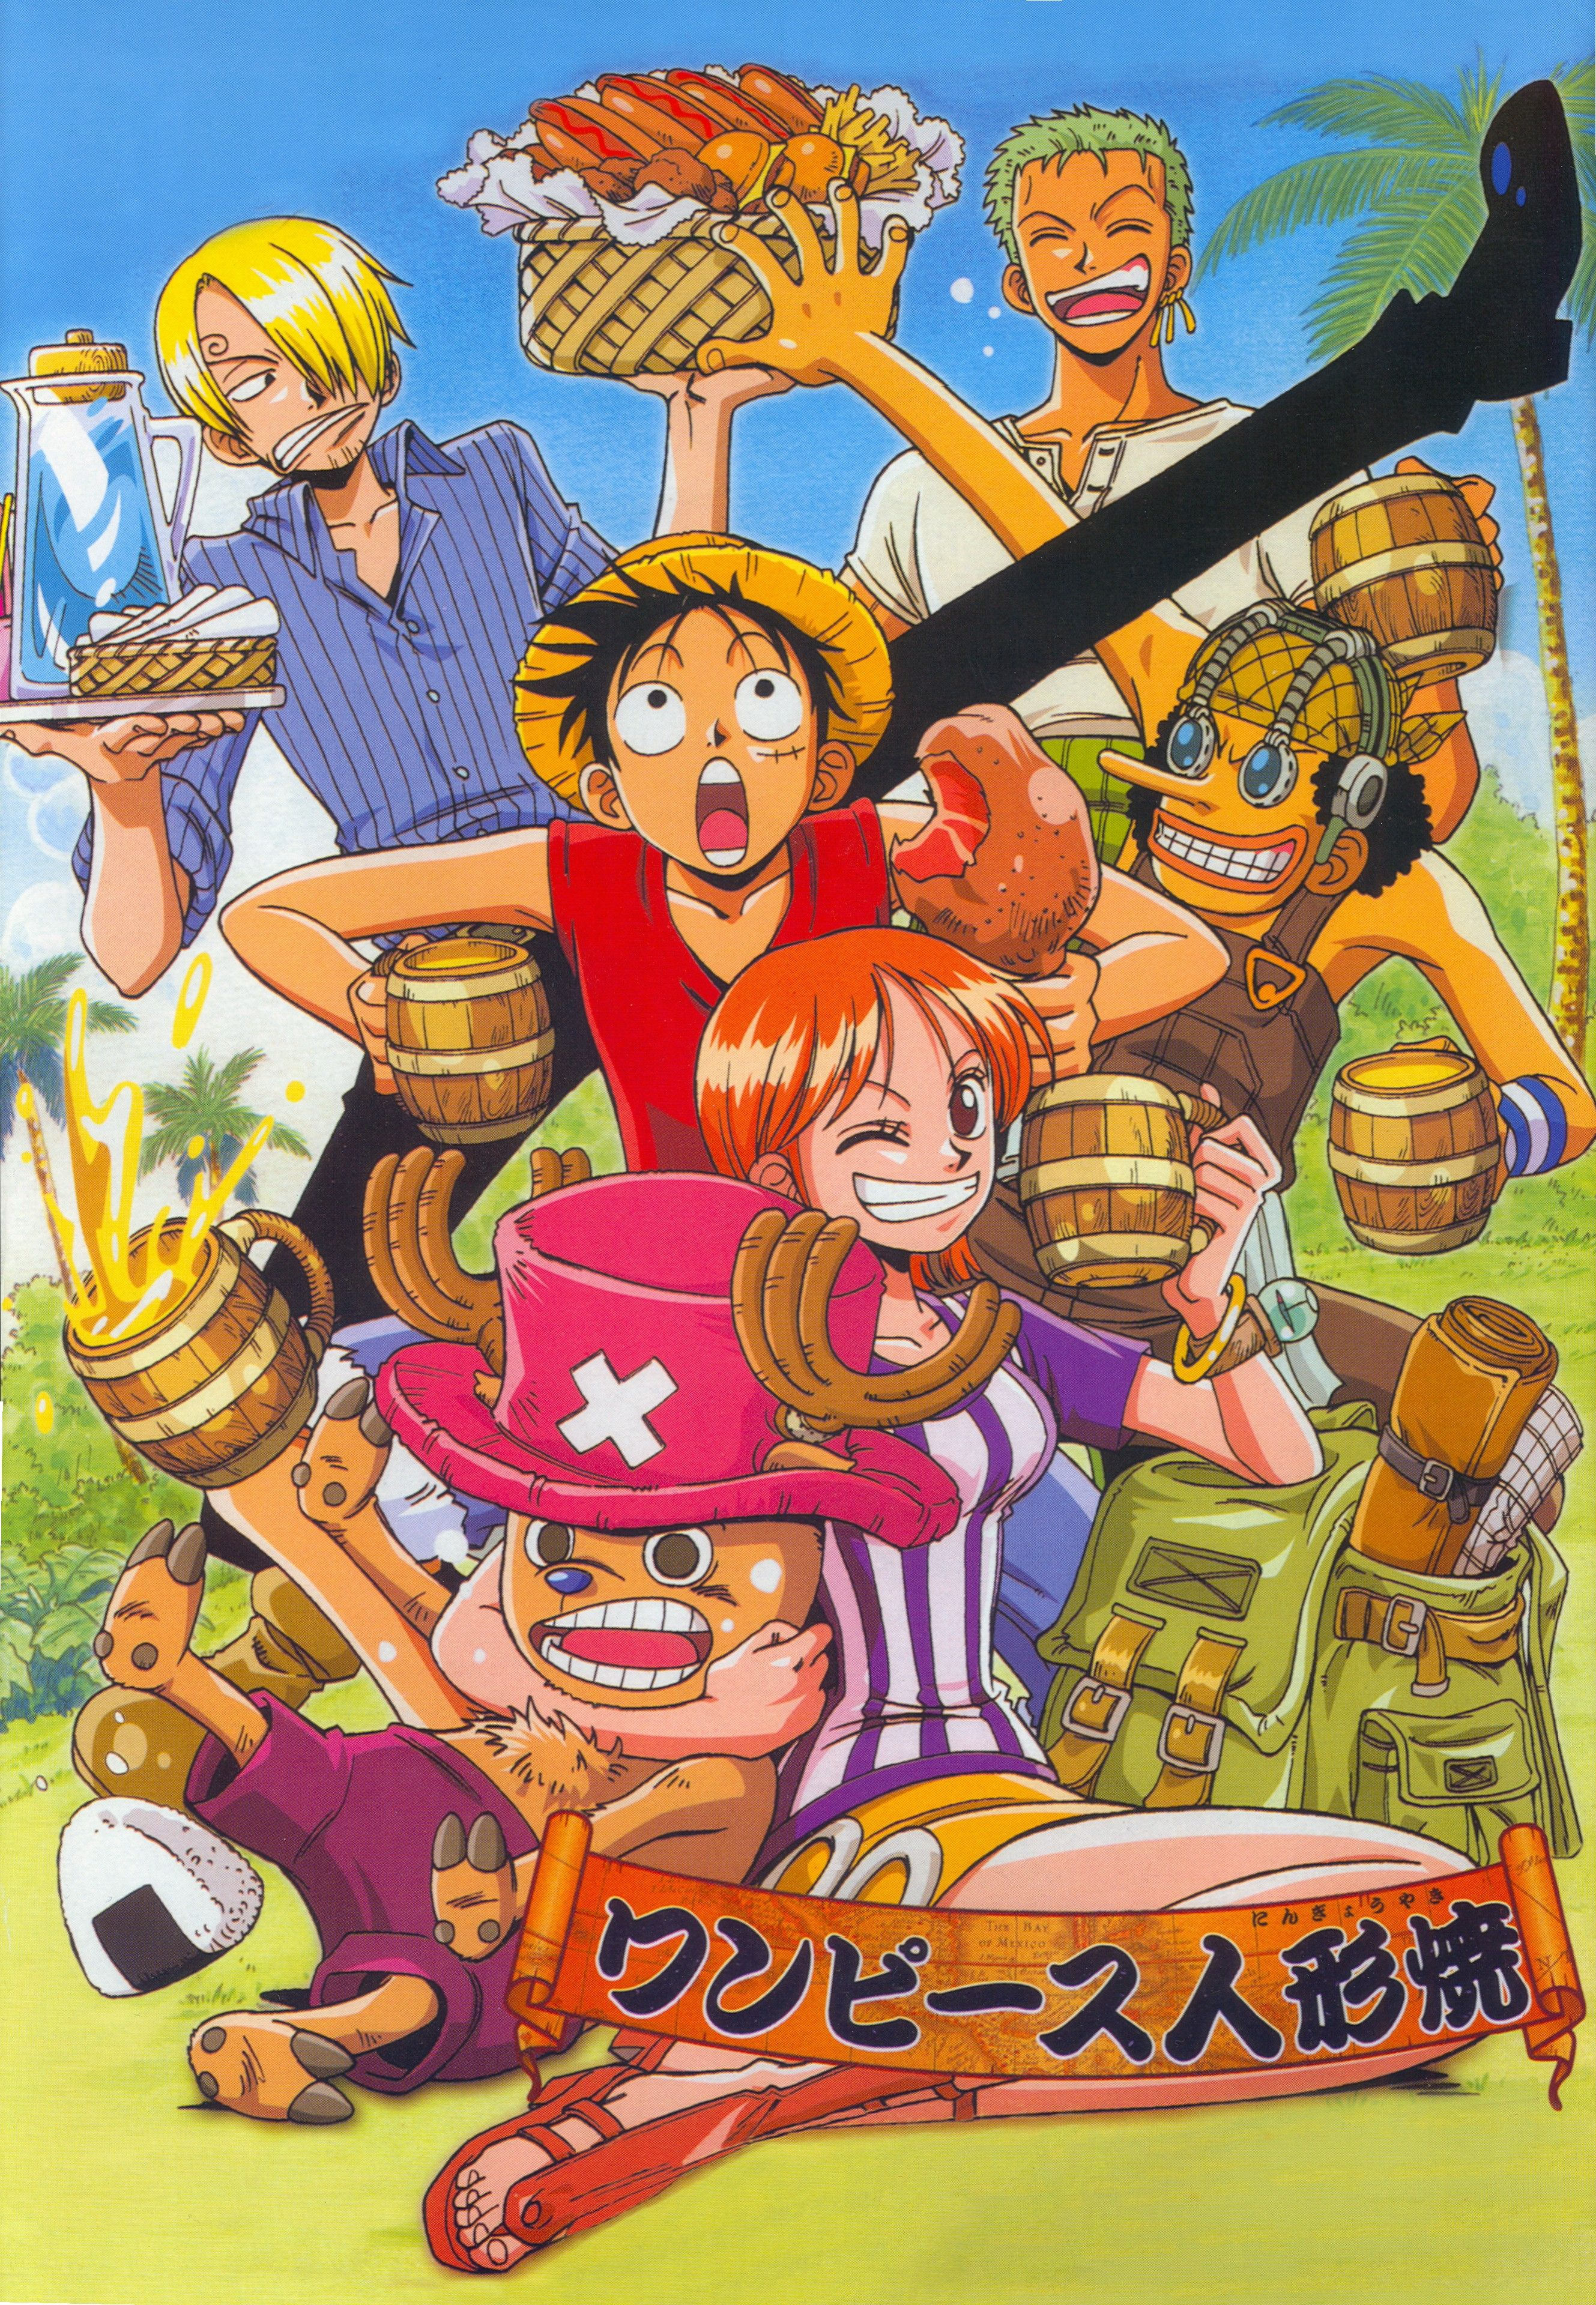 Pin by Caitlyn Brickey on anime (With images)   One piece luffy, One piece main characters, One ...